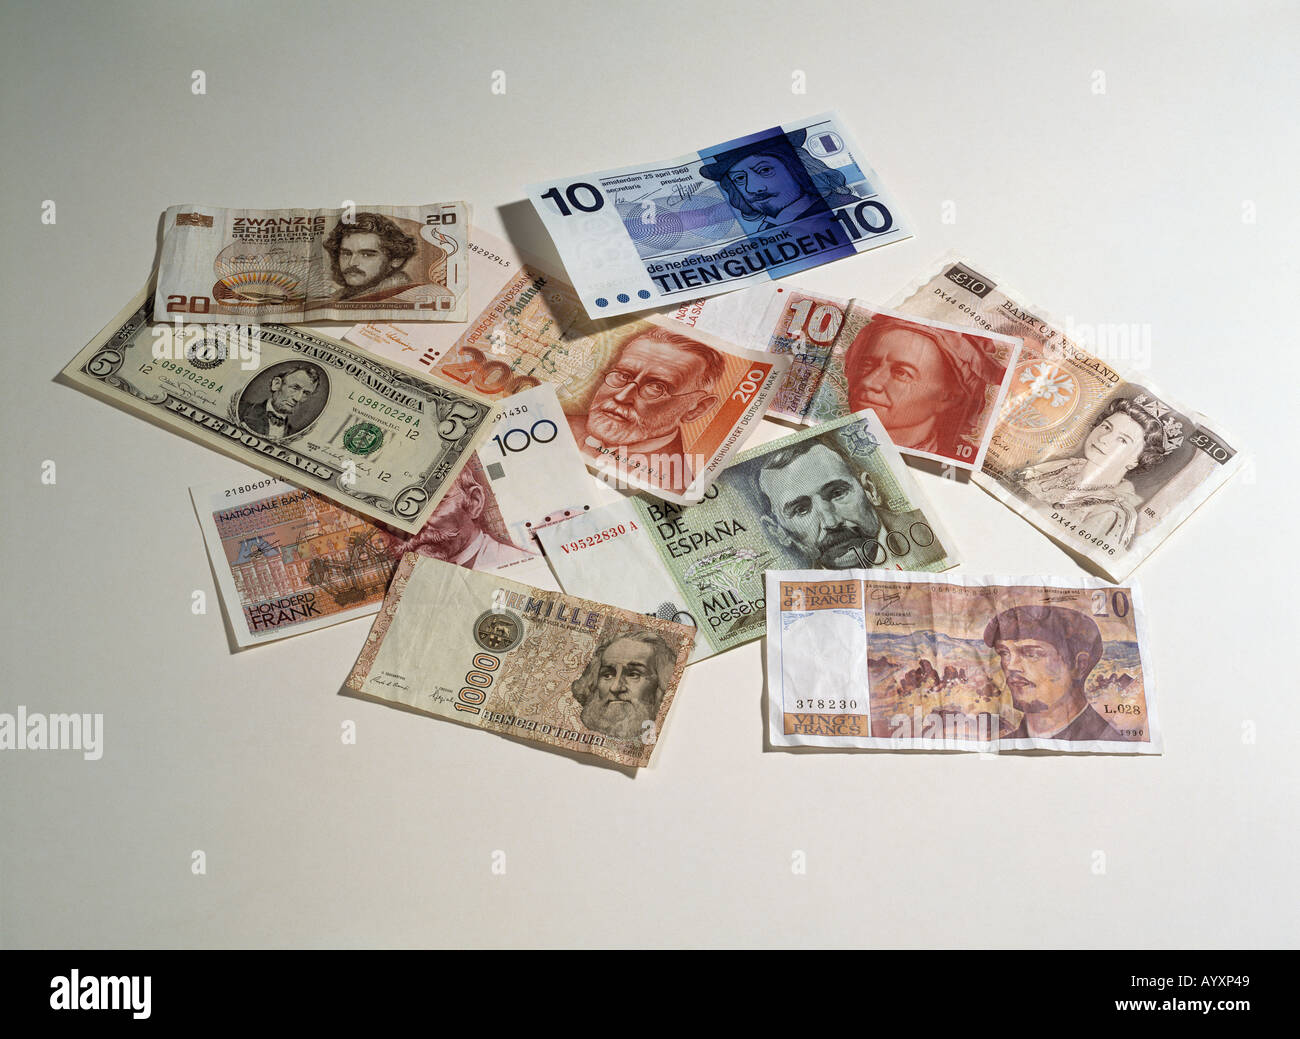 international bank notes, money, currency - Stock Image